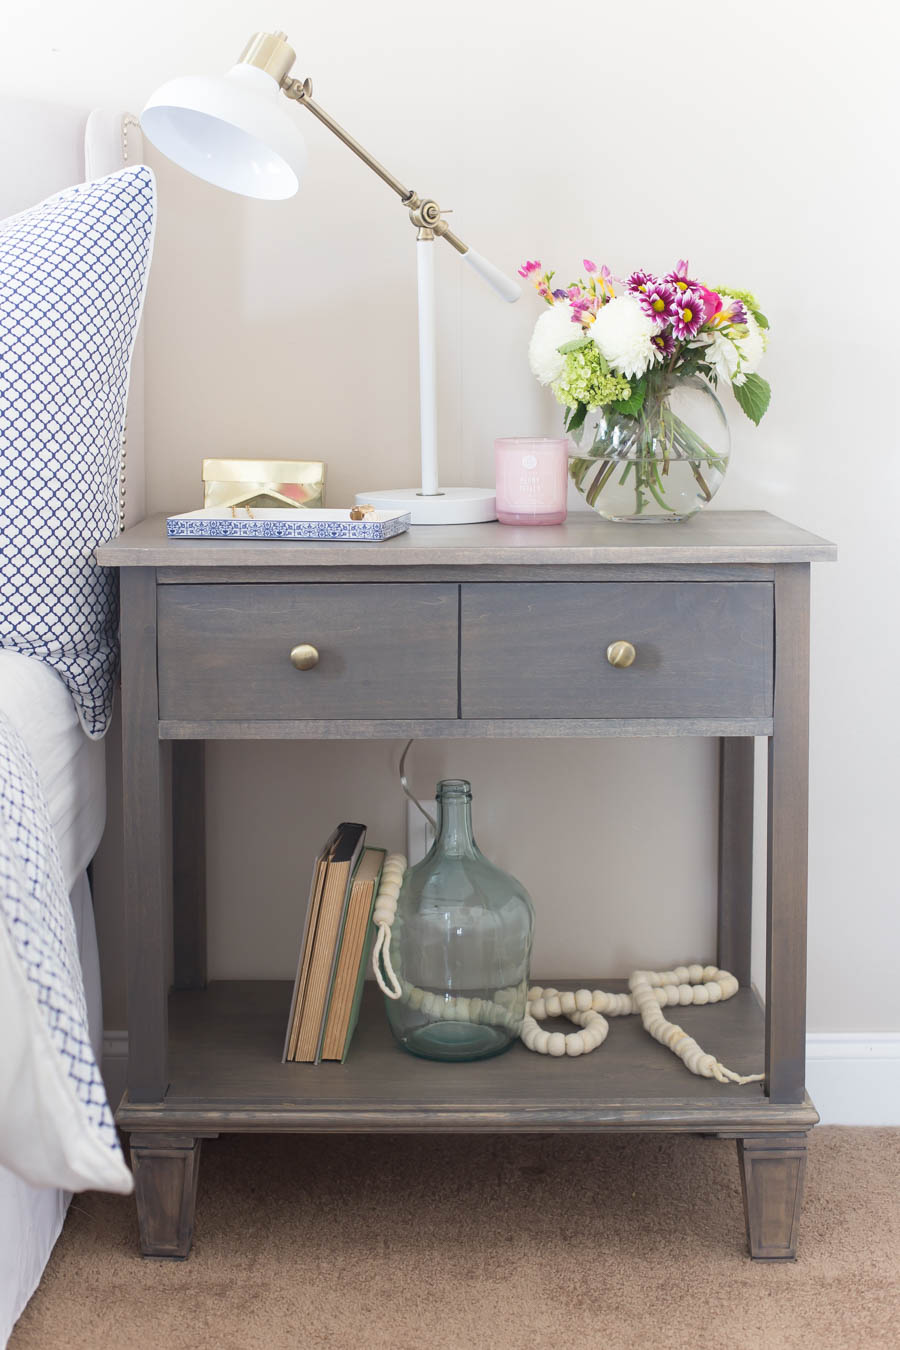 How to build a DIY nightstand - free plans and tutorial!